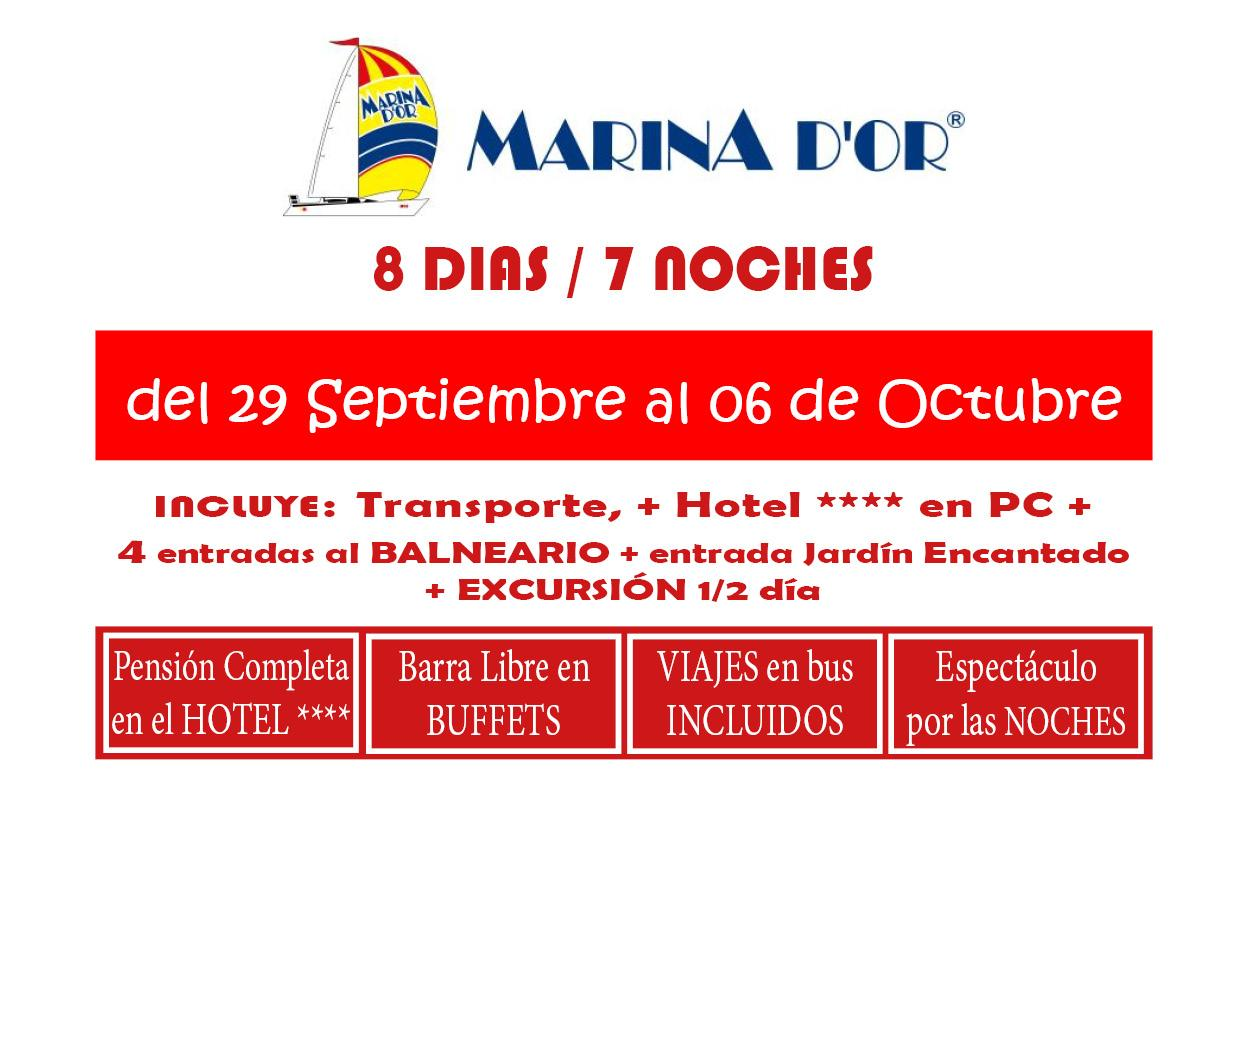 MARINA D`OR # HOTEL 4**** (del 29 de Sept. al 06 de Oct) # 8 días/7 noches en PC buffet+ bebida